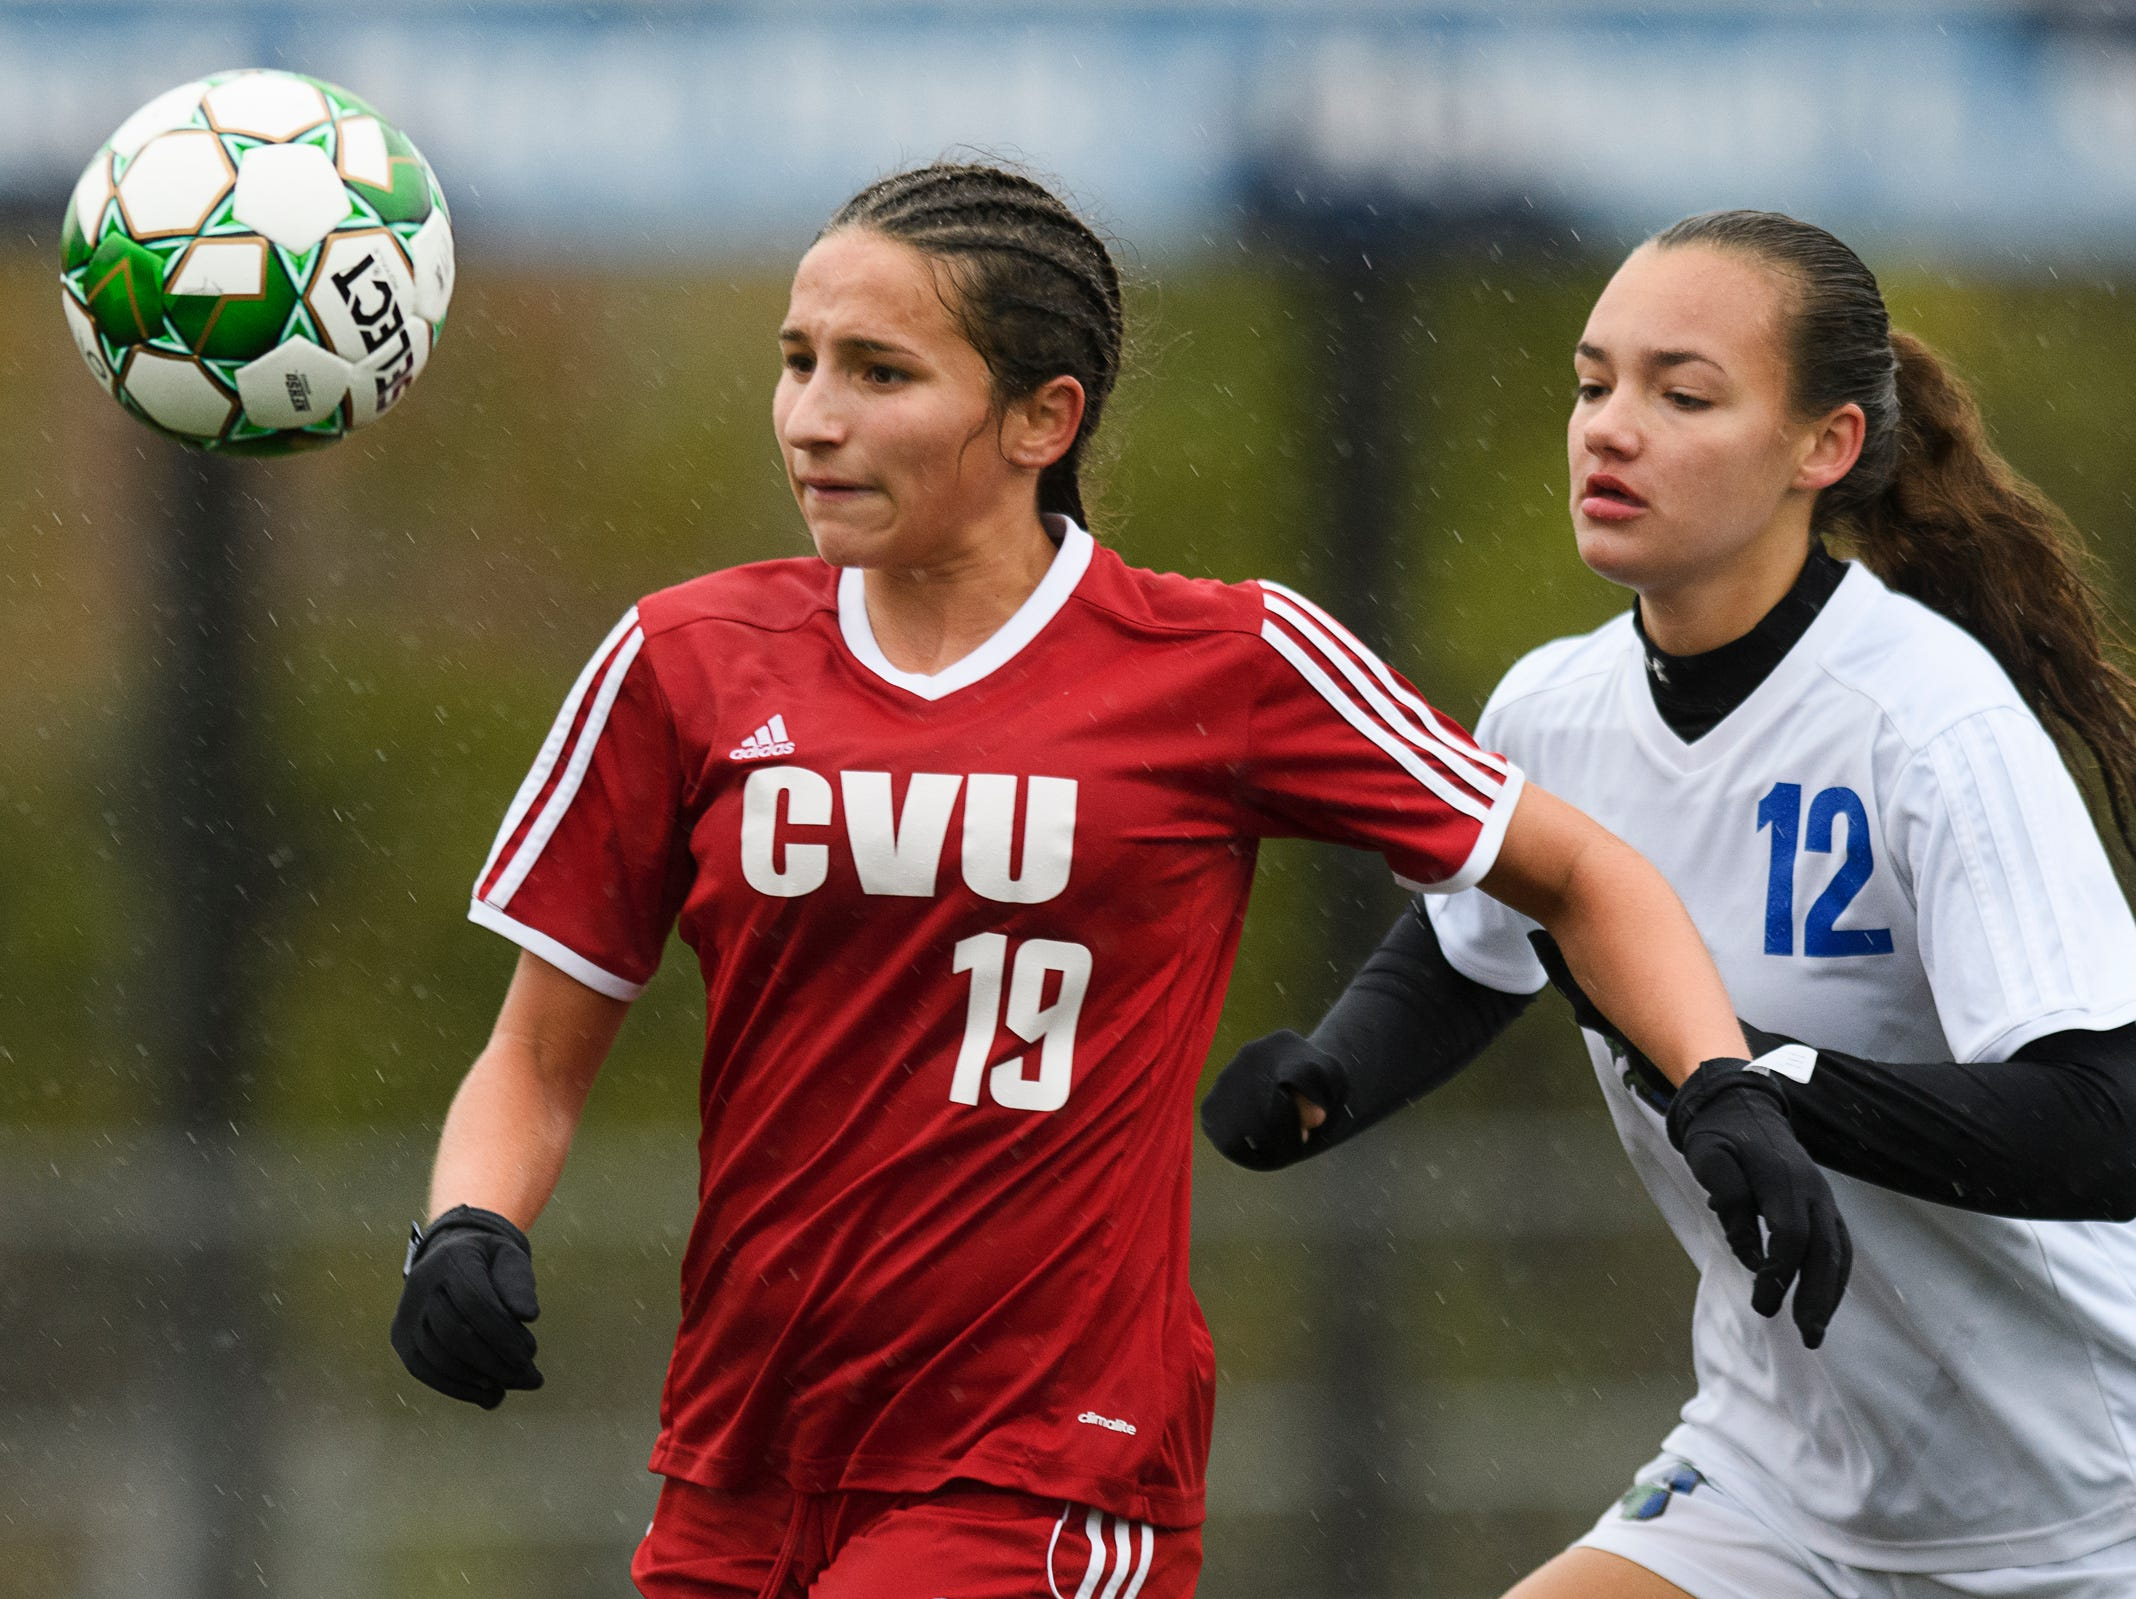 CVU's Sara Kelley (19) and Colchester's Jordan Clark (12) battle for the ball during the division I girls soccer championship game between the Colchester Lakers and the Champlain Valley Union Redhawks at Buck Hard Field on Saturday morning November 3, 2018 in Burlington.